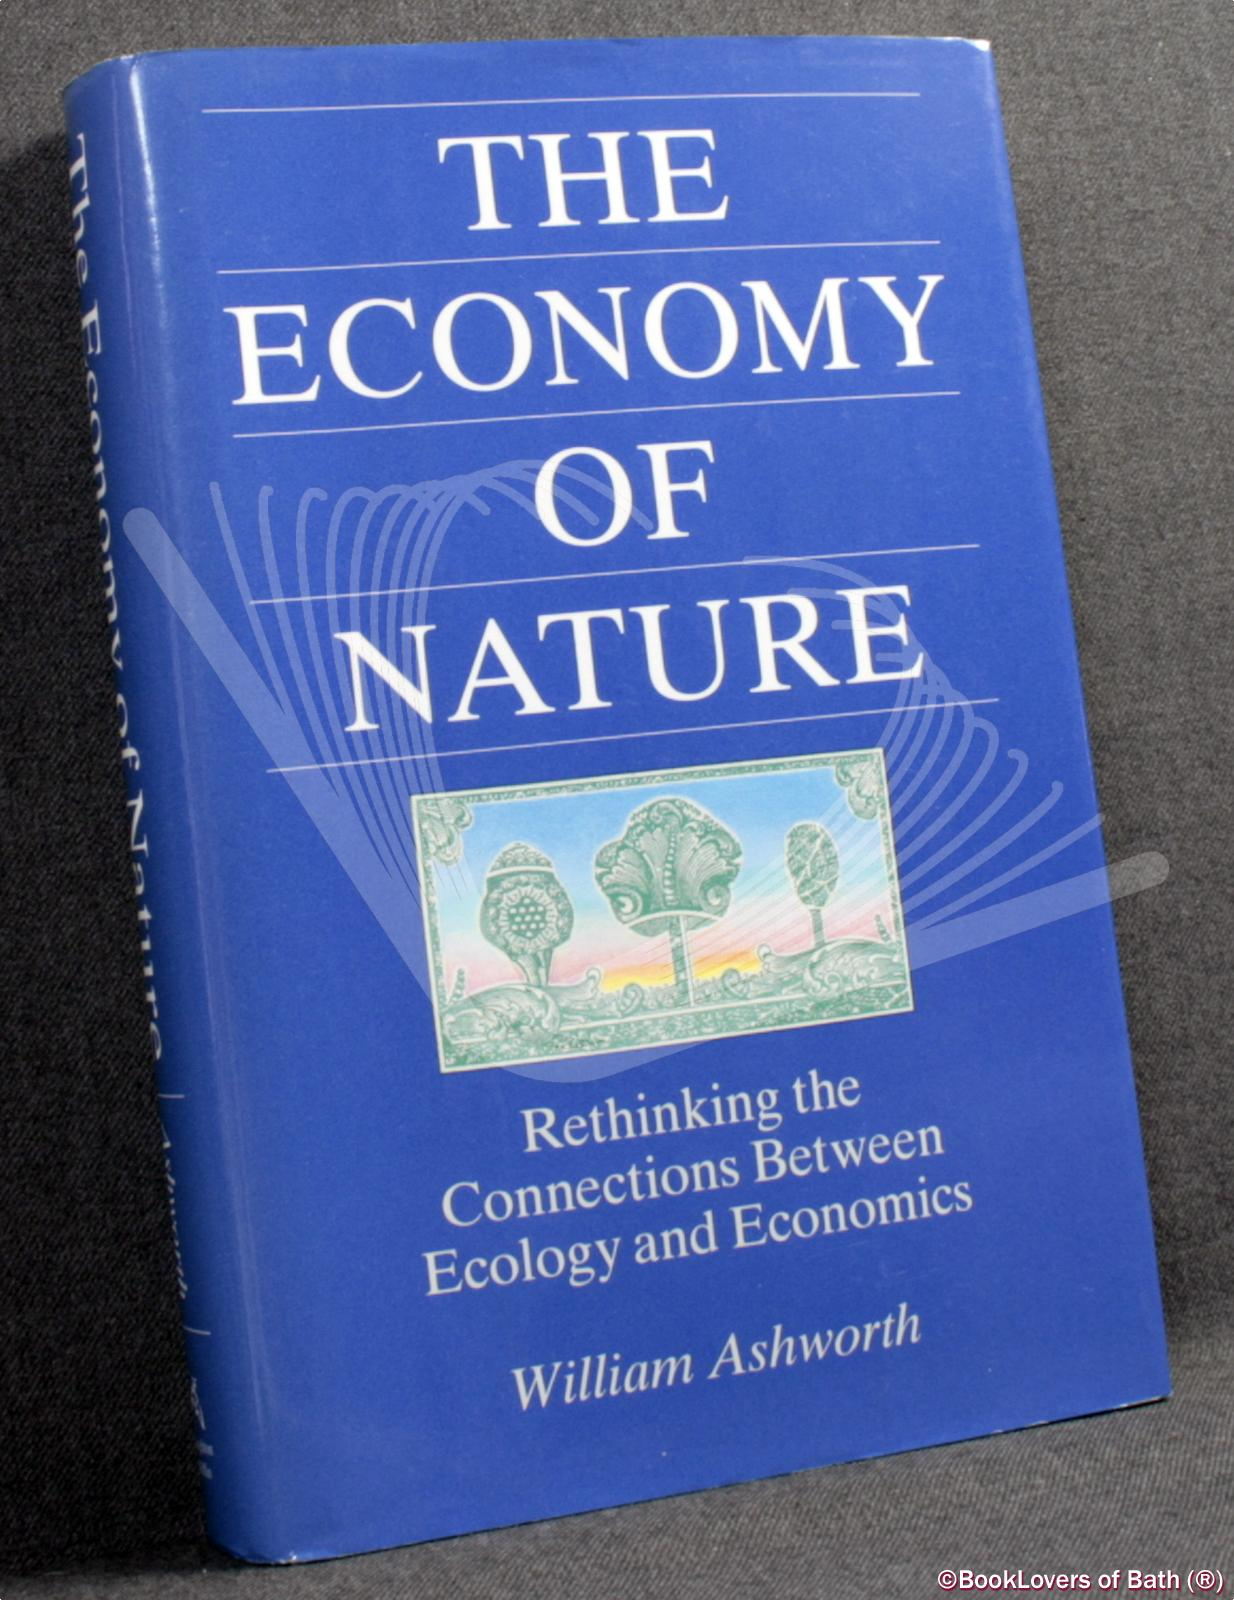 The Economy of Nature: Rethinking the Connections Between Ecology and Economics - William Ashworth